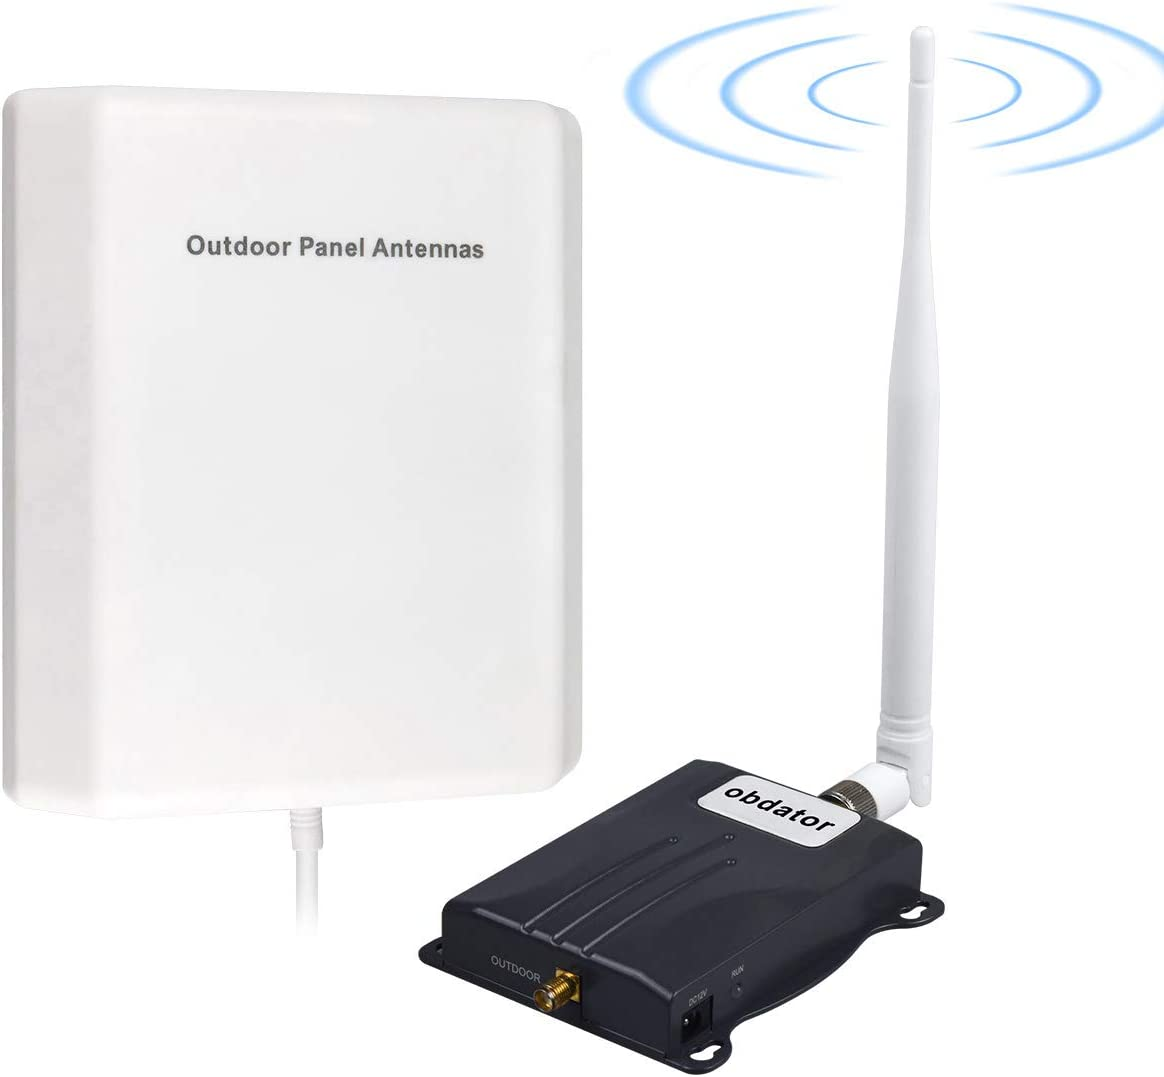 Home Cell Phone Signal Booster AT&T T-Mobile Signal Booster 4G LTE obdator Band12 /17 Cell Phone Booster ATT Cell Phone Signal Amplifier Improve Voice & Data Speed